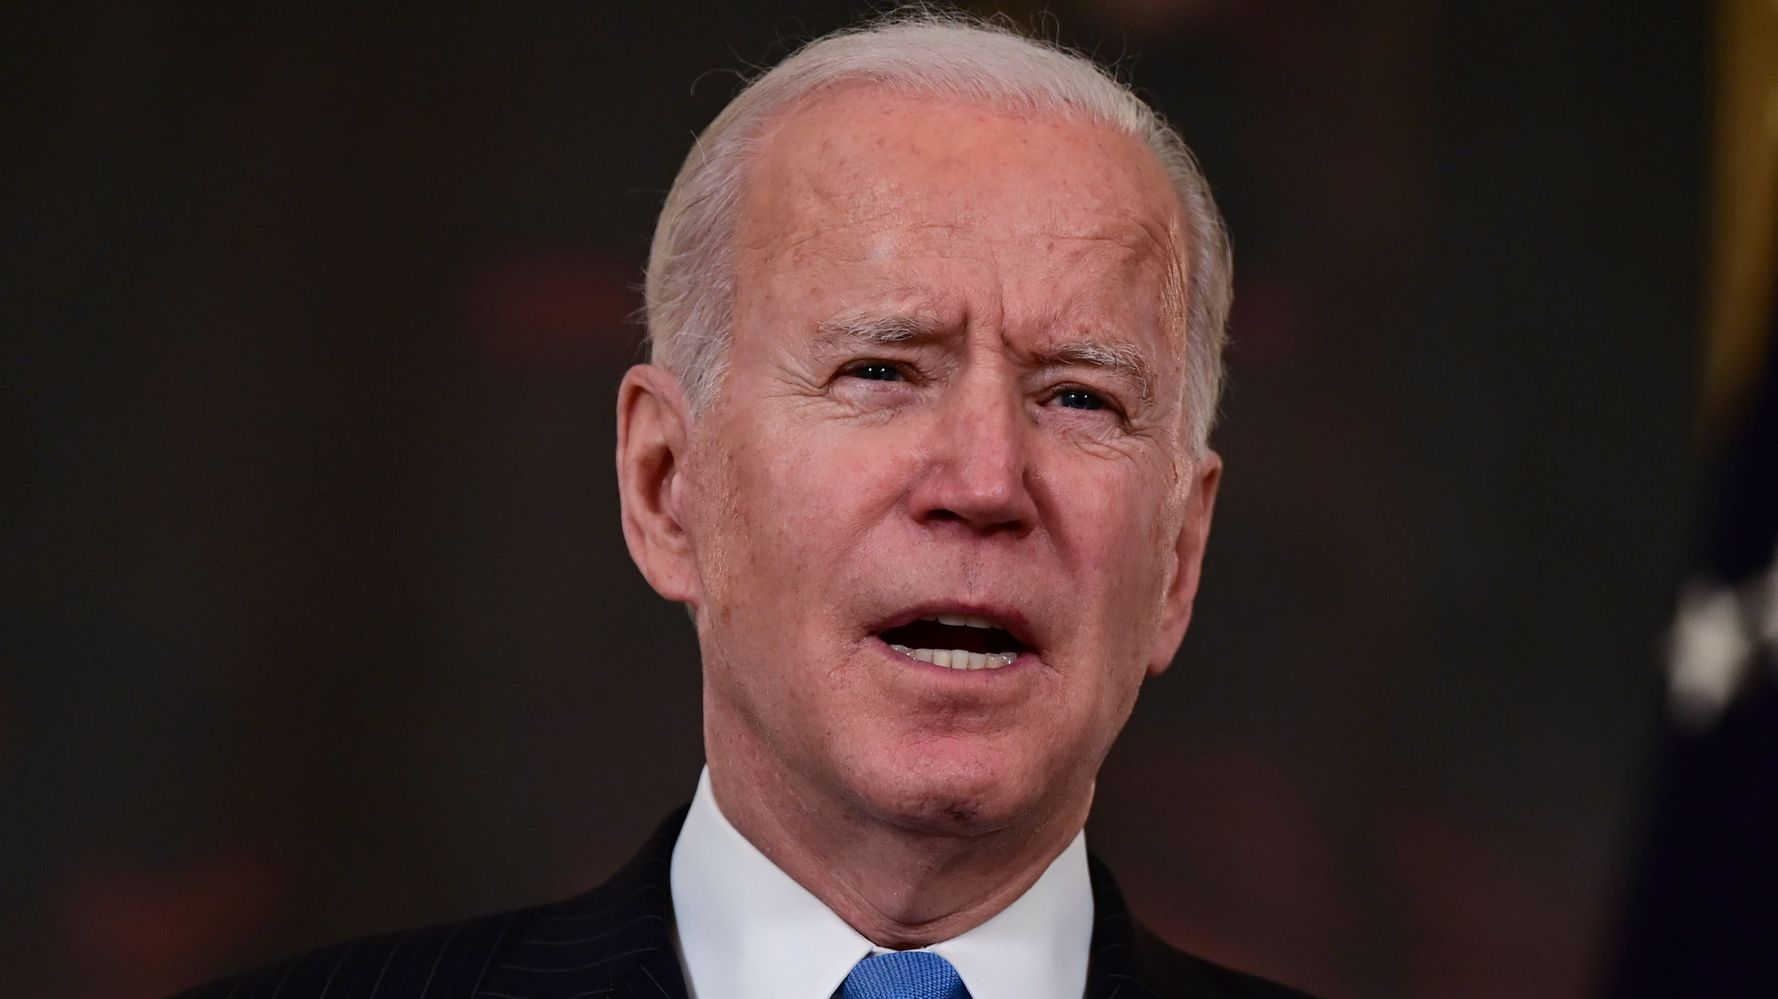 Biden Says U.S. Will Have Enough Vaccine Supply For All Adults By End Of May